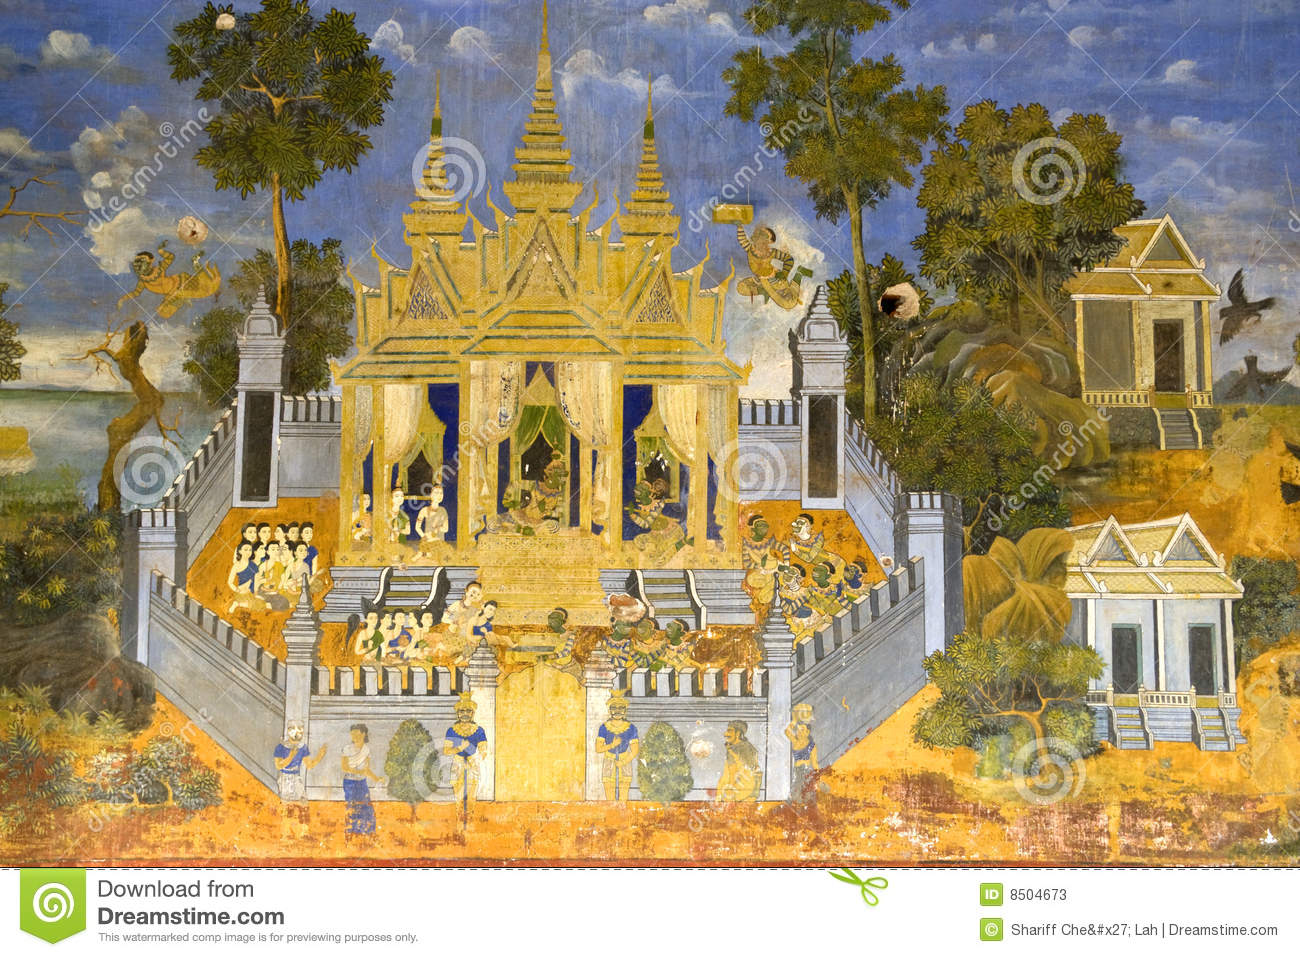 cambodian royal palace wall painting stock photos image 8504673. Black Bedroom Furniture Sets. Home Design Ideas